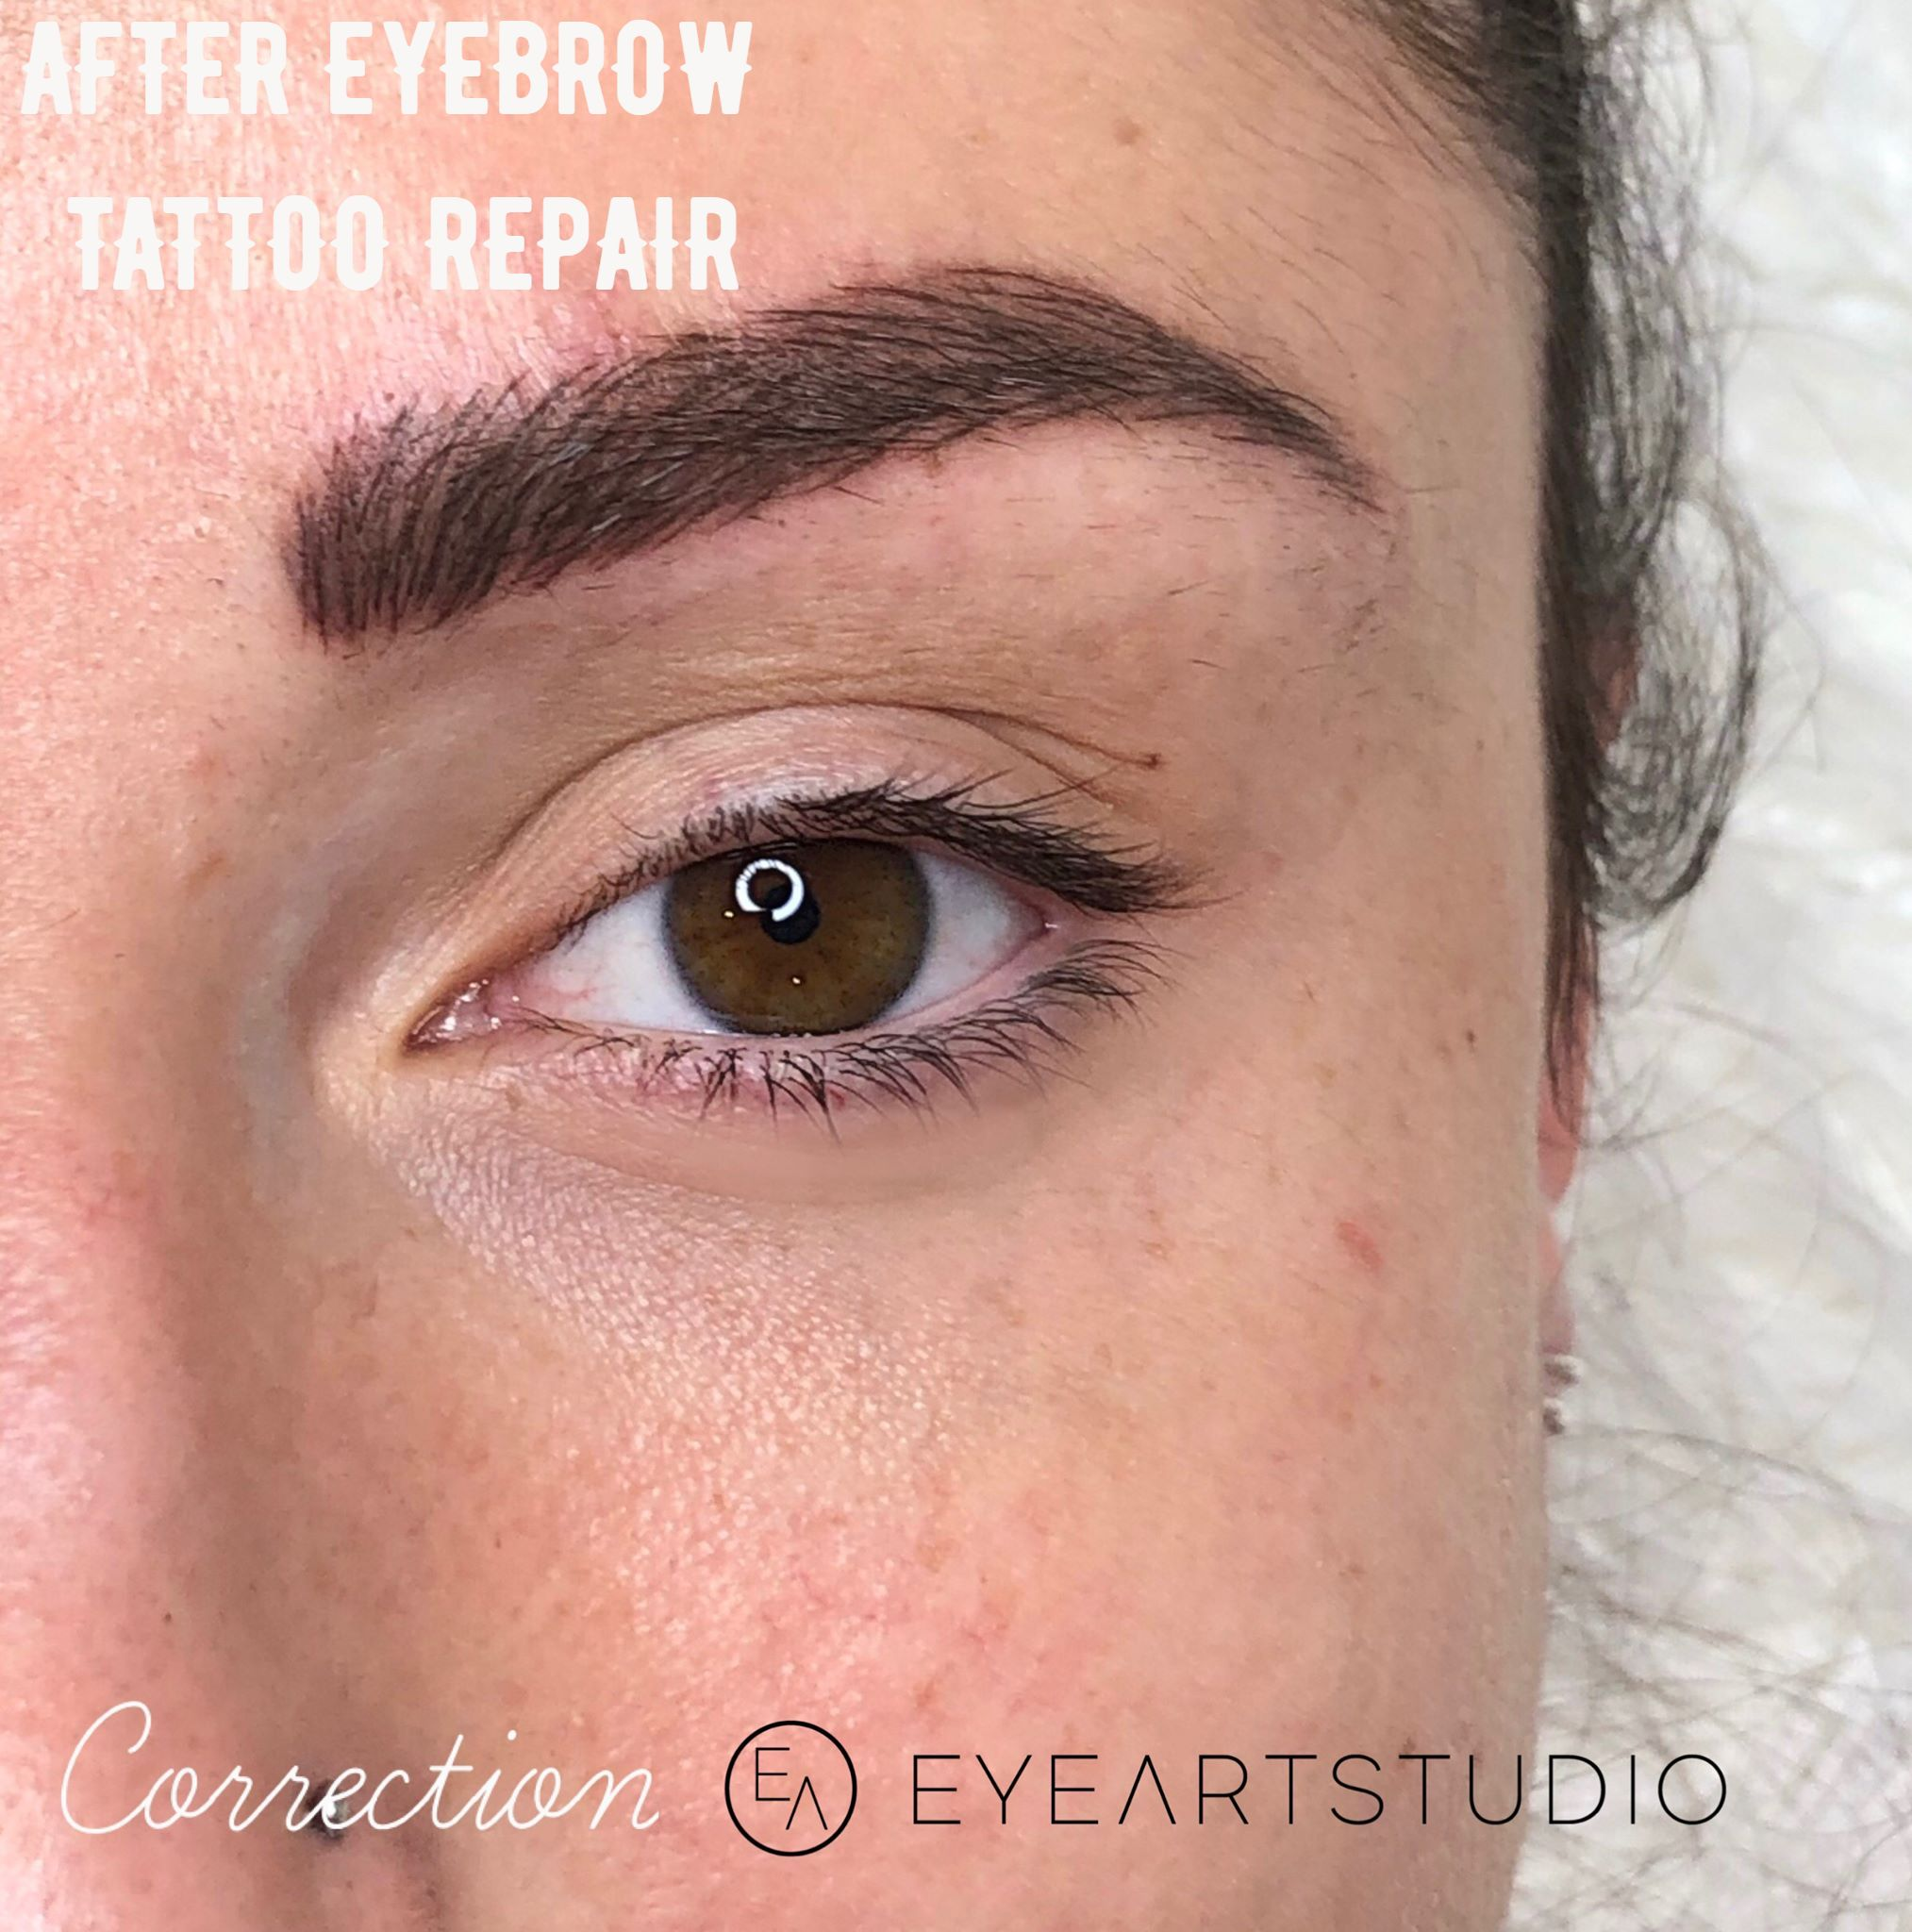 Repair Microblading, Microblading Correction, Eyebrow Tattoo Correction, Brow Tattoo Microblading Repair